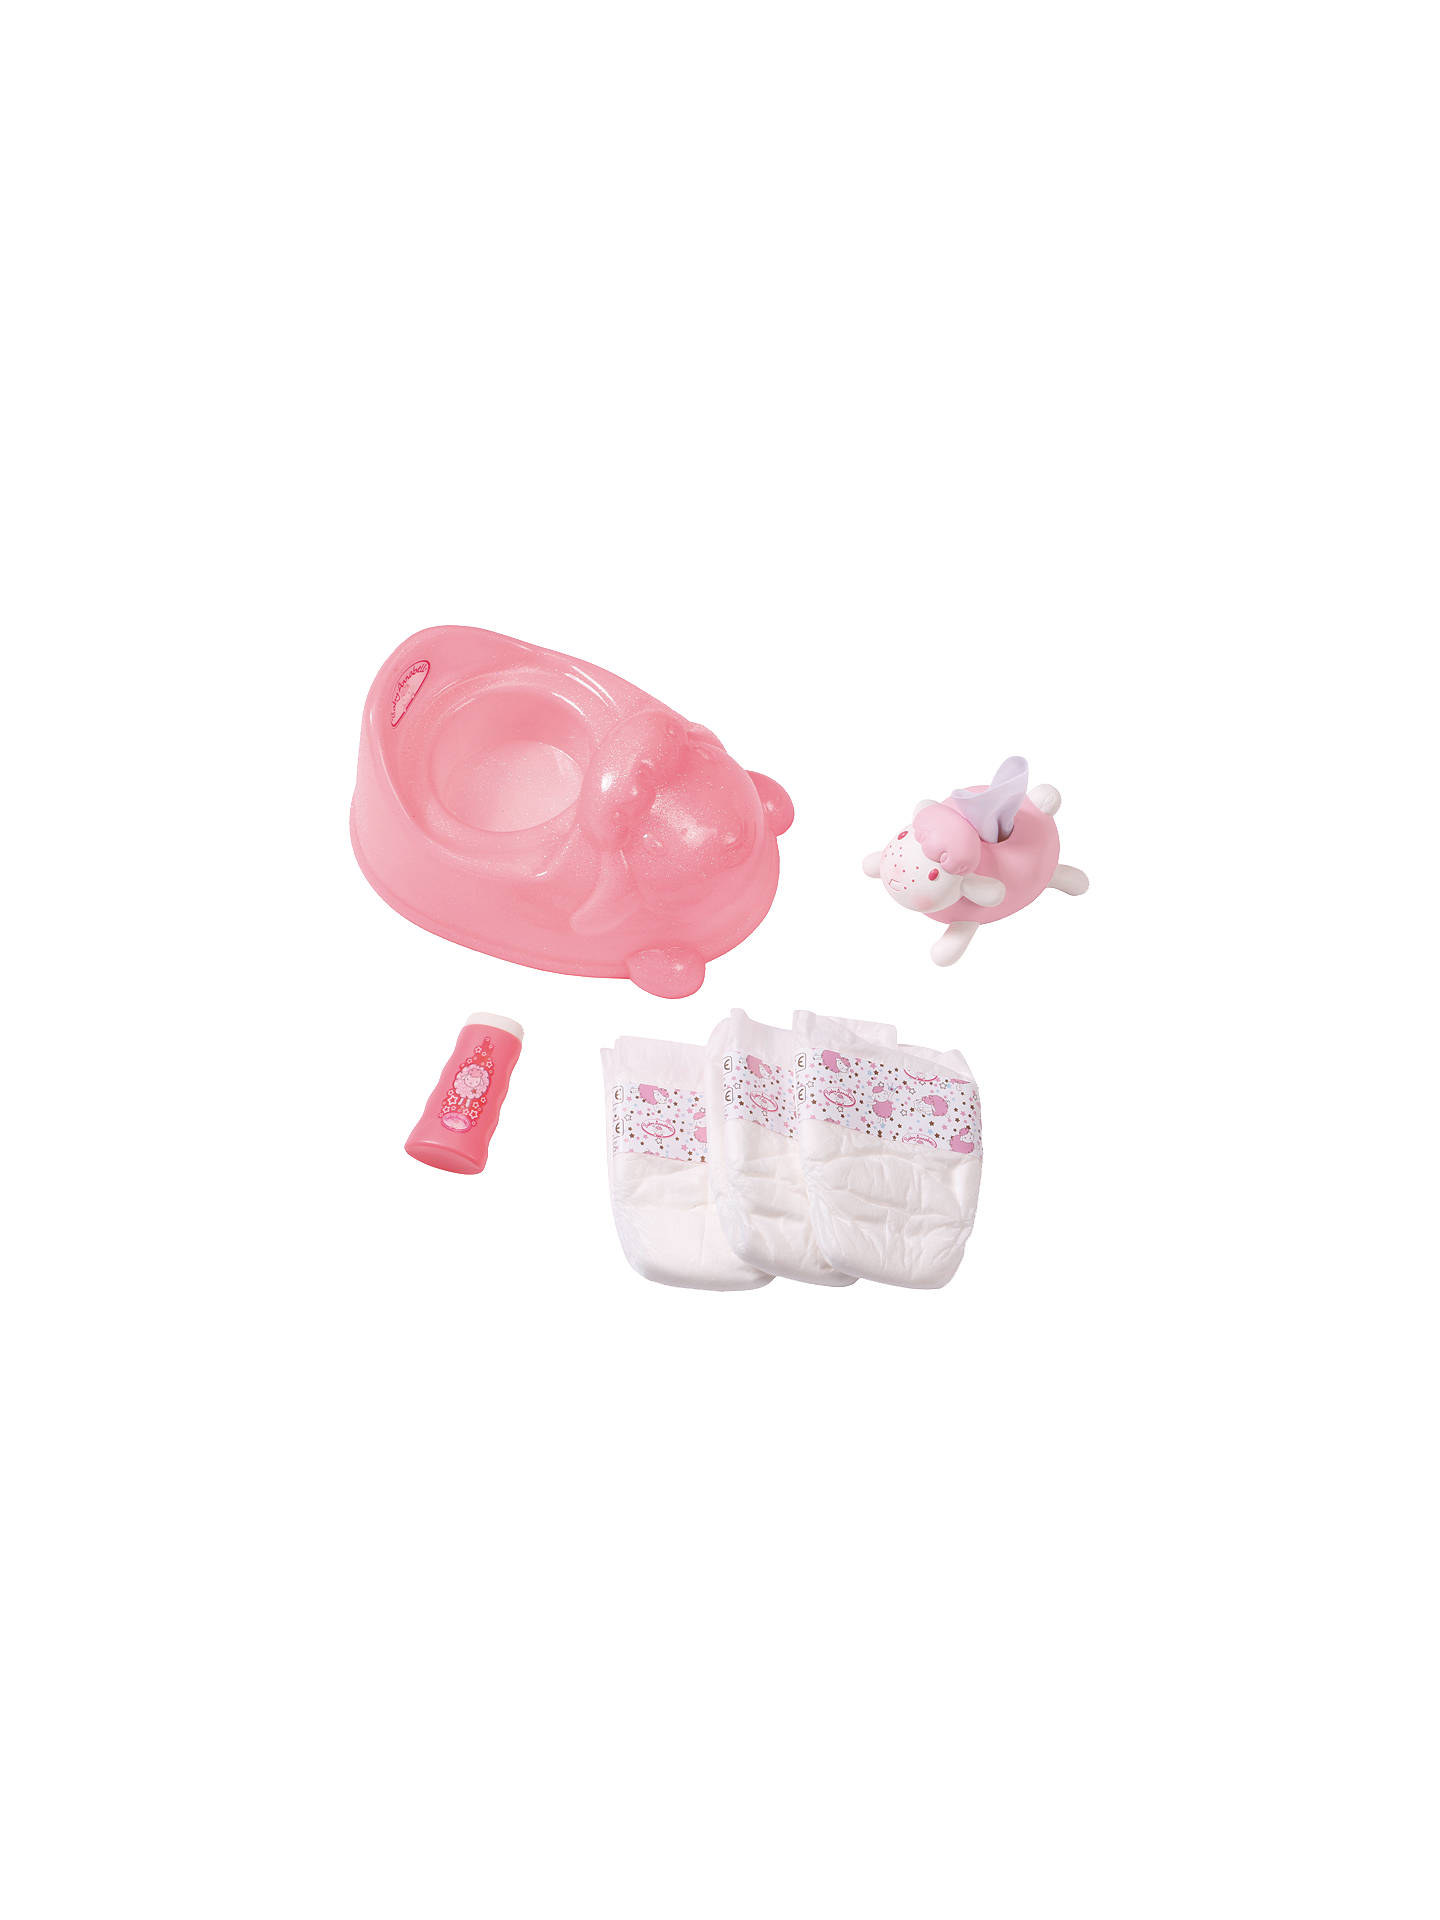 Baby Annabell Potty Training Set at John Lewis & Partners